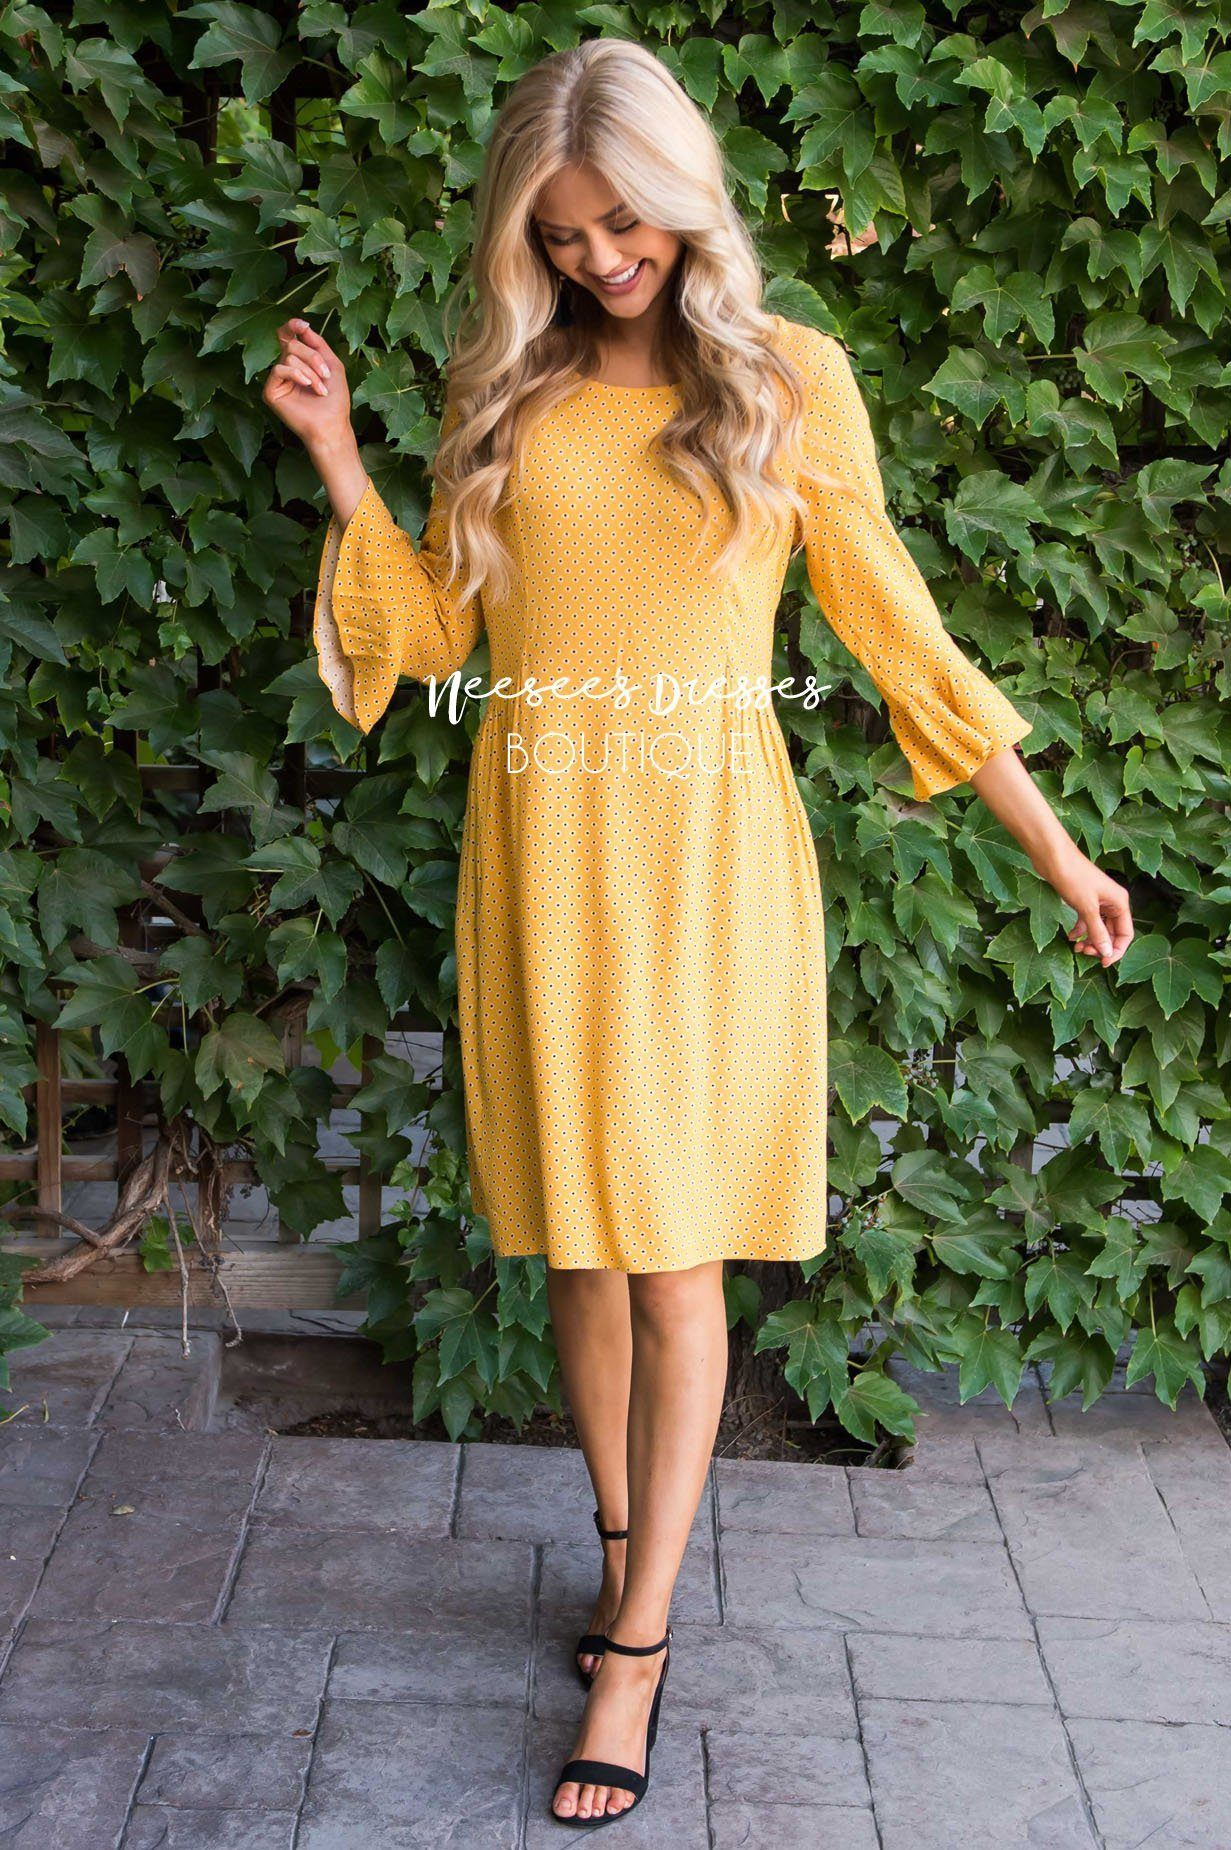 The Sunny Dress Modest Dress Best Place To Buy Modest Dress Online Modest Dresses And Skirts For Church Neesee S D Modest Dresses Neesees Dresses Fashion [ 1850 x 1231 Pixel ]